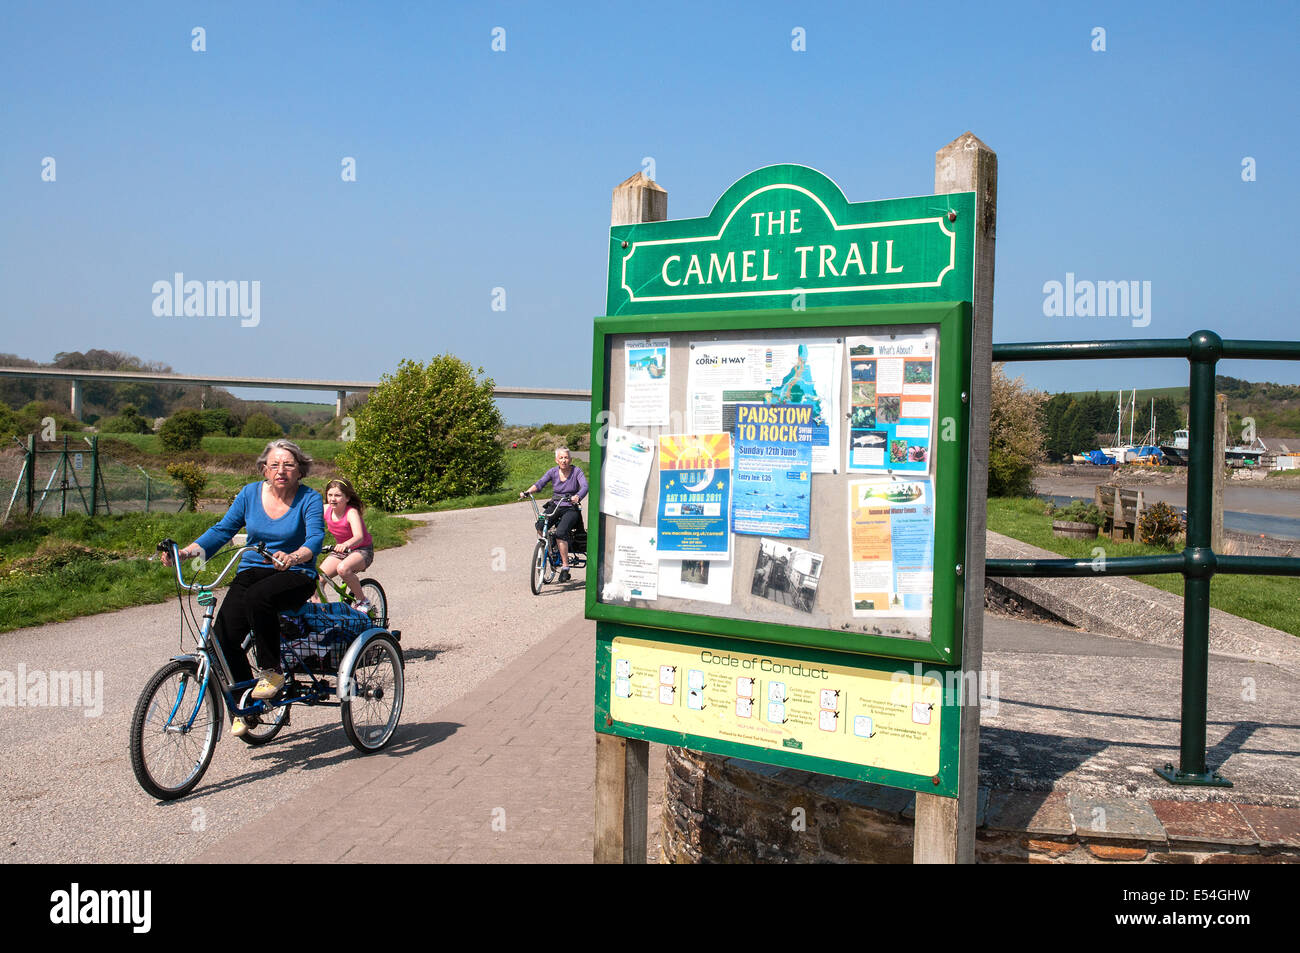 Cyclists on the Camel trail cycle path that runs between Wadebridge and Padstow in Cornwall, UK - Stock Image